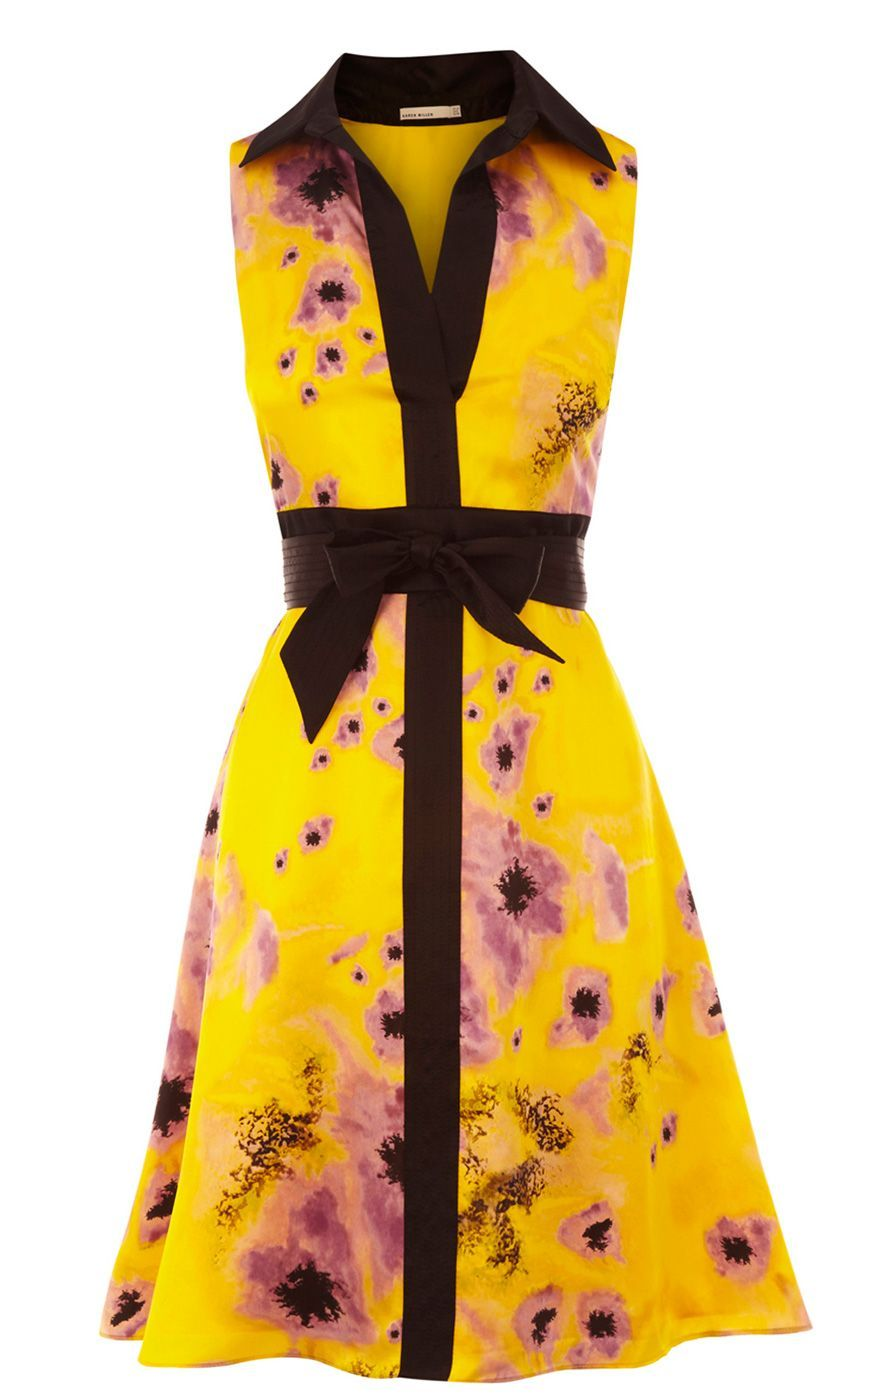 Yellow dress suit  Karen Millen Yellow Floral Print Dress  suitdresses